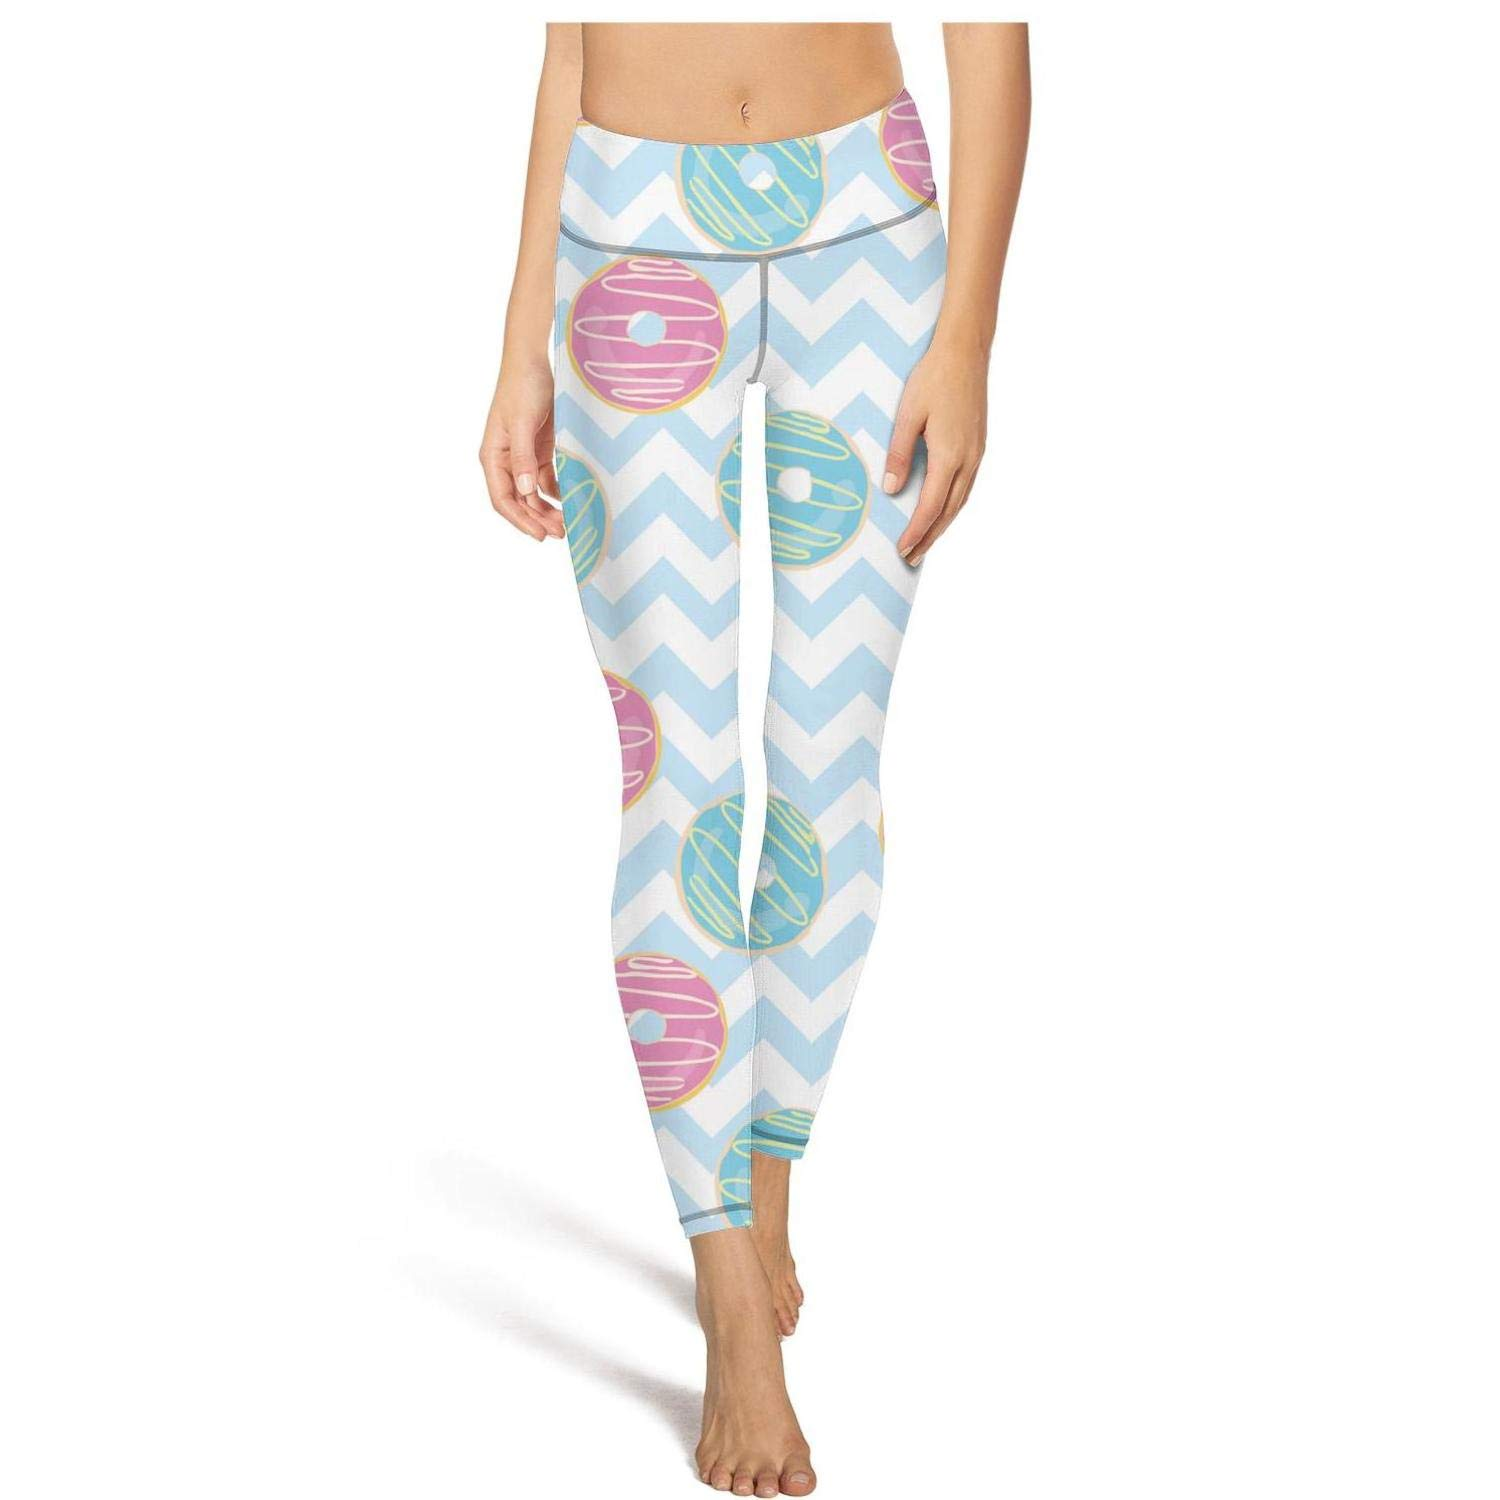 Jufdds Bun Donut Blue Backdrop Girls High Waist Yoga Pants Stretchy Legging Fitness Leggings